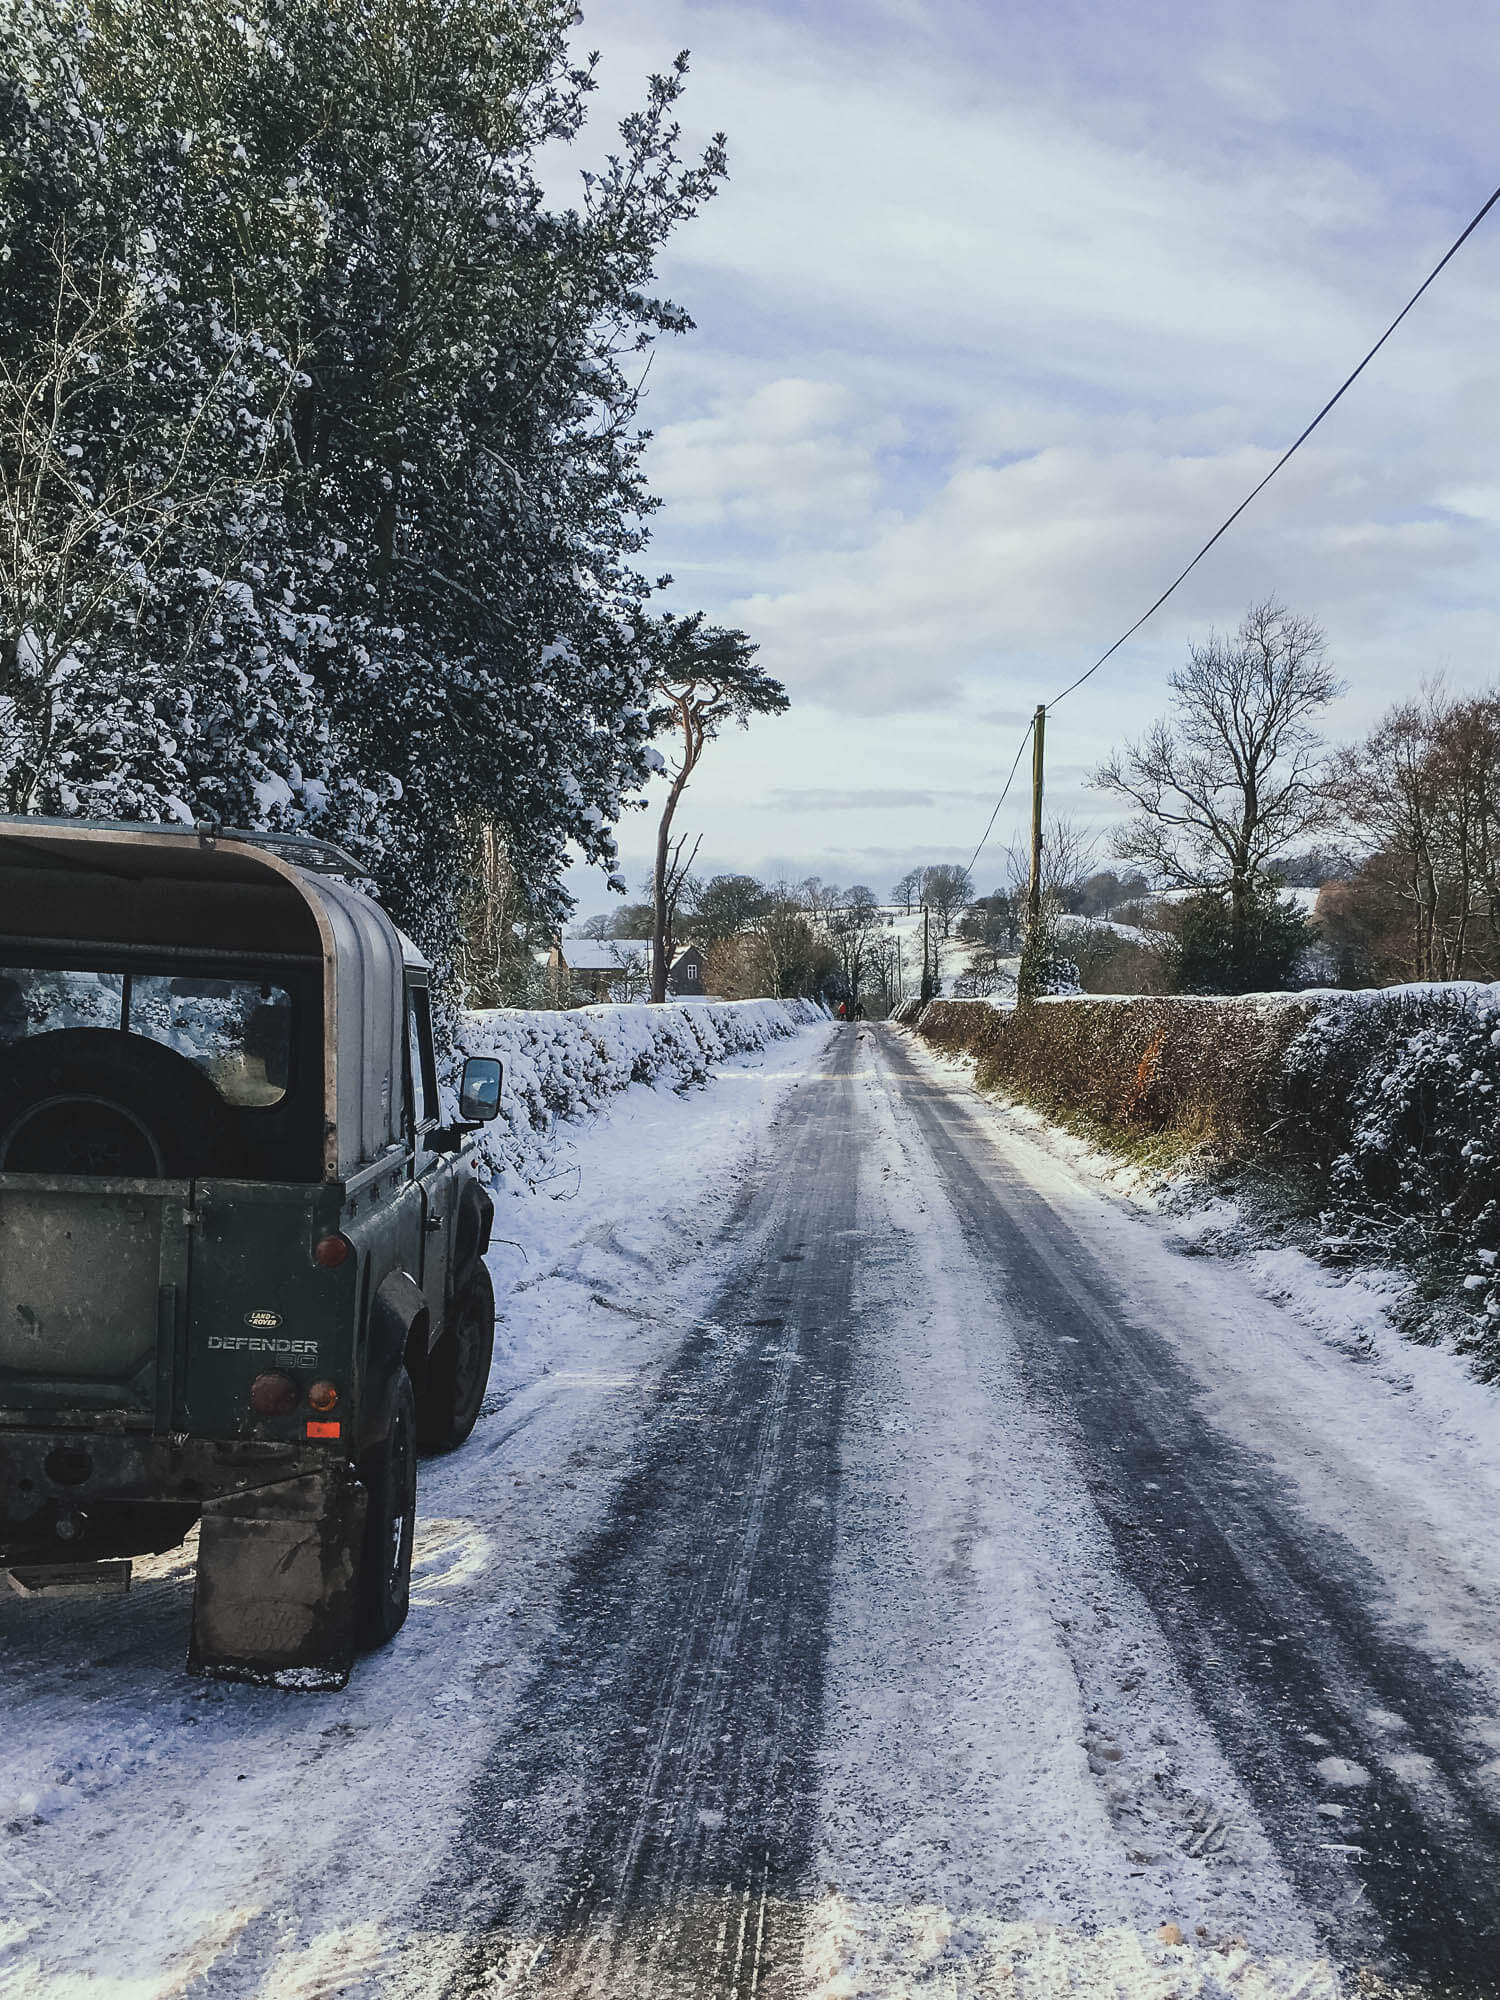 Green Land Rover Defender in the Snow, Shropshire, UK